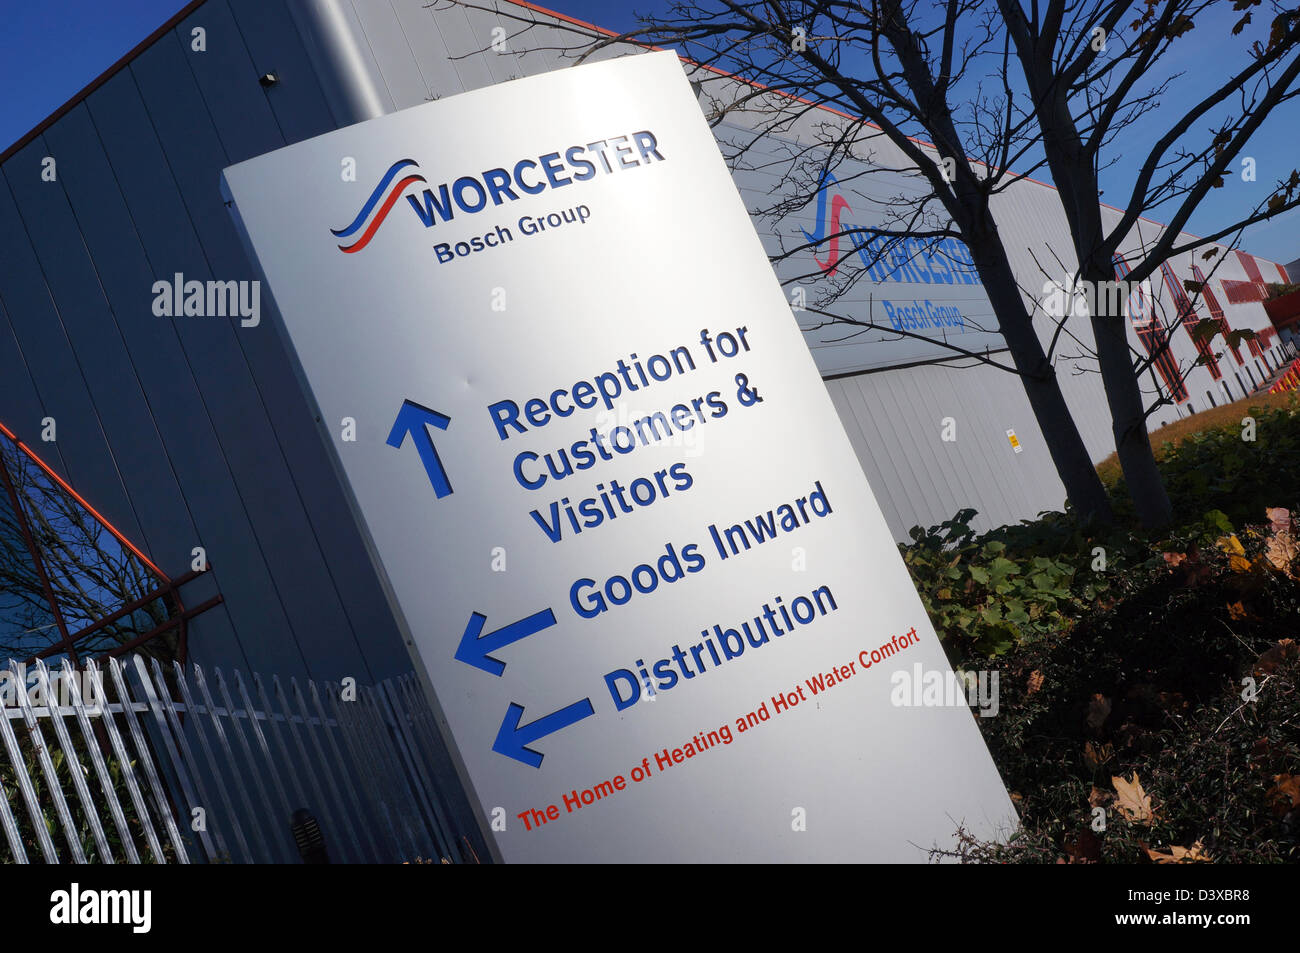 Worcester heat systems - worcester bosch group head office, factory at in Worcester - dec 2012 - Stock Image